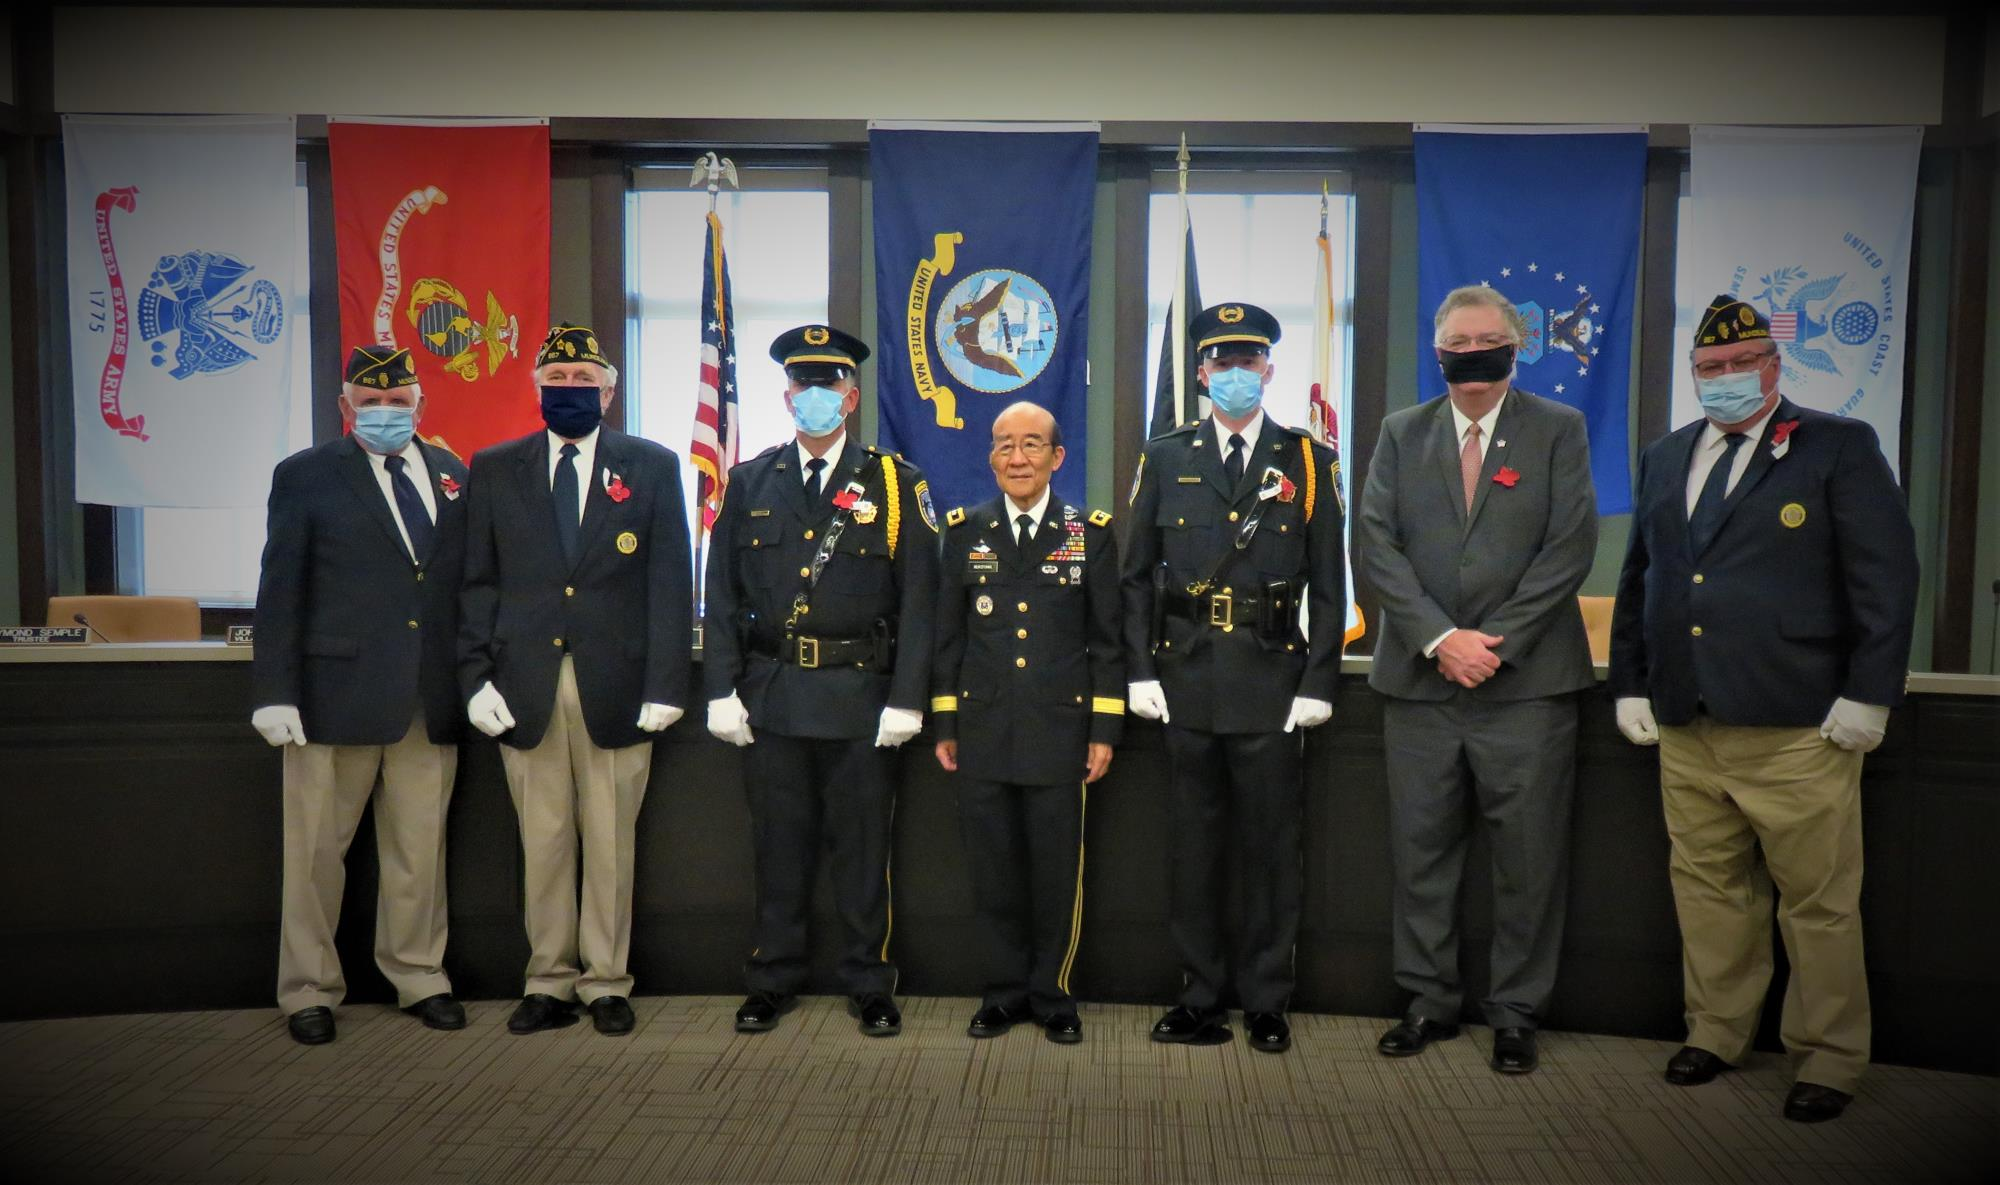 Mundelein American Legion Hosts Virtual Memorial Day Ceremony — Residents Invited to Participate Remotely